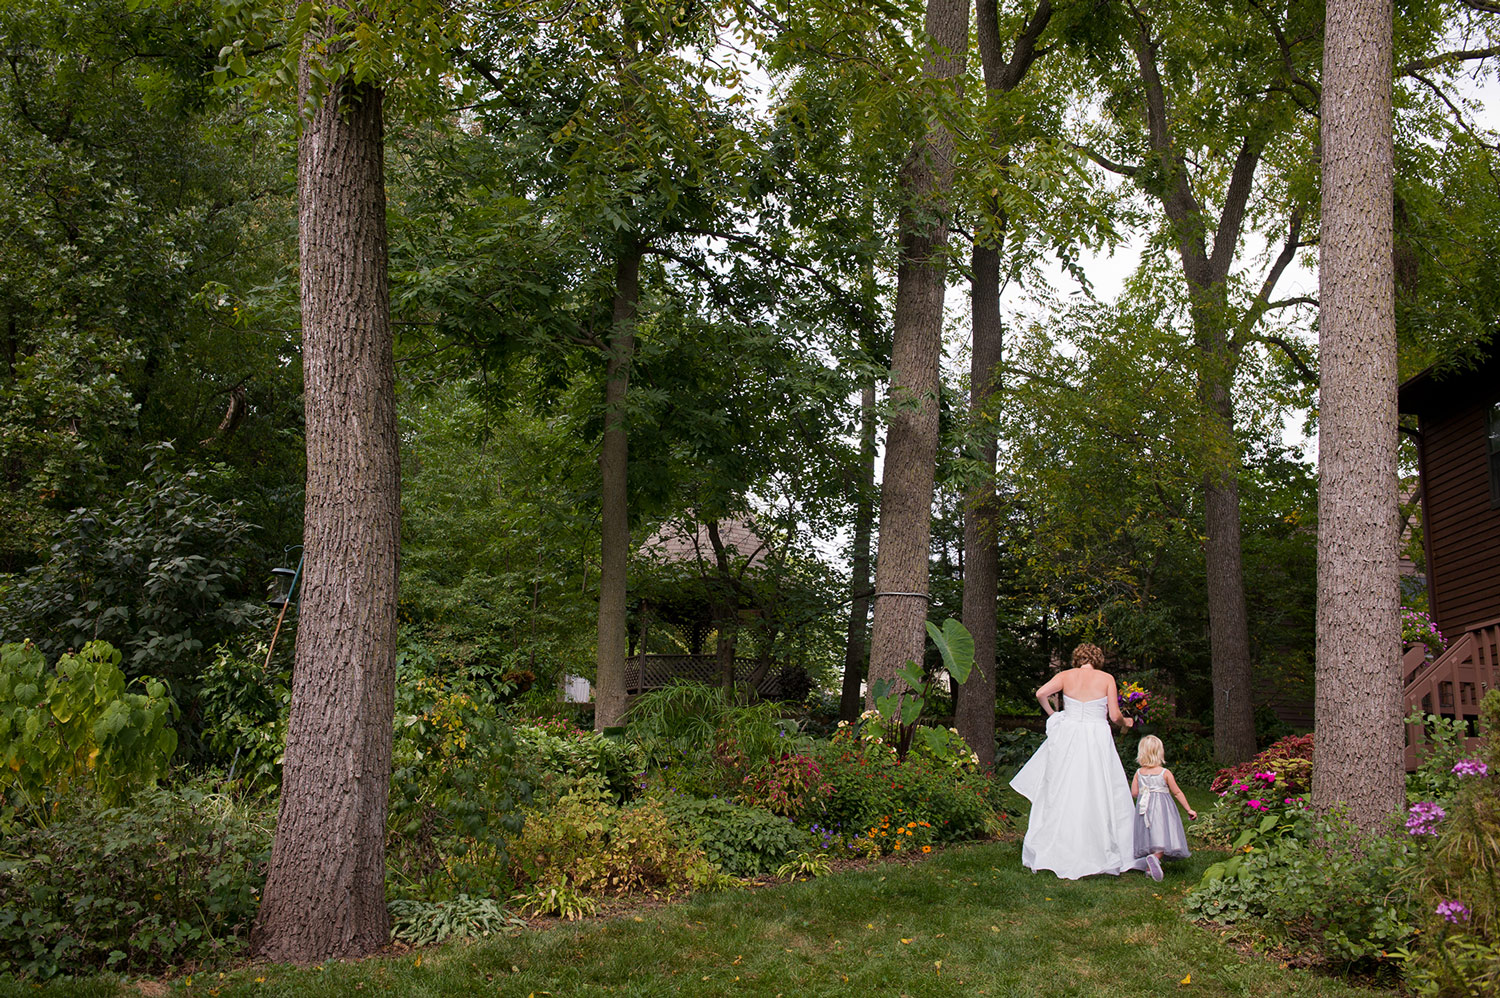 wedding-photography-minneapolis-mark-kegans-470.jpg